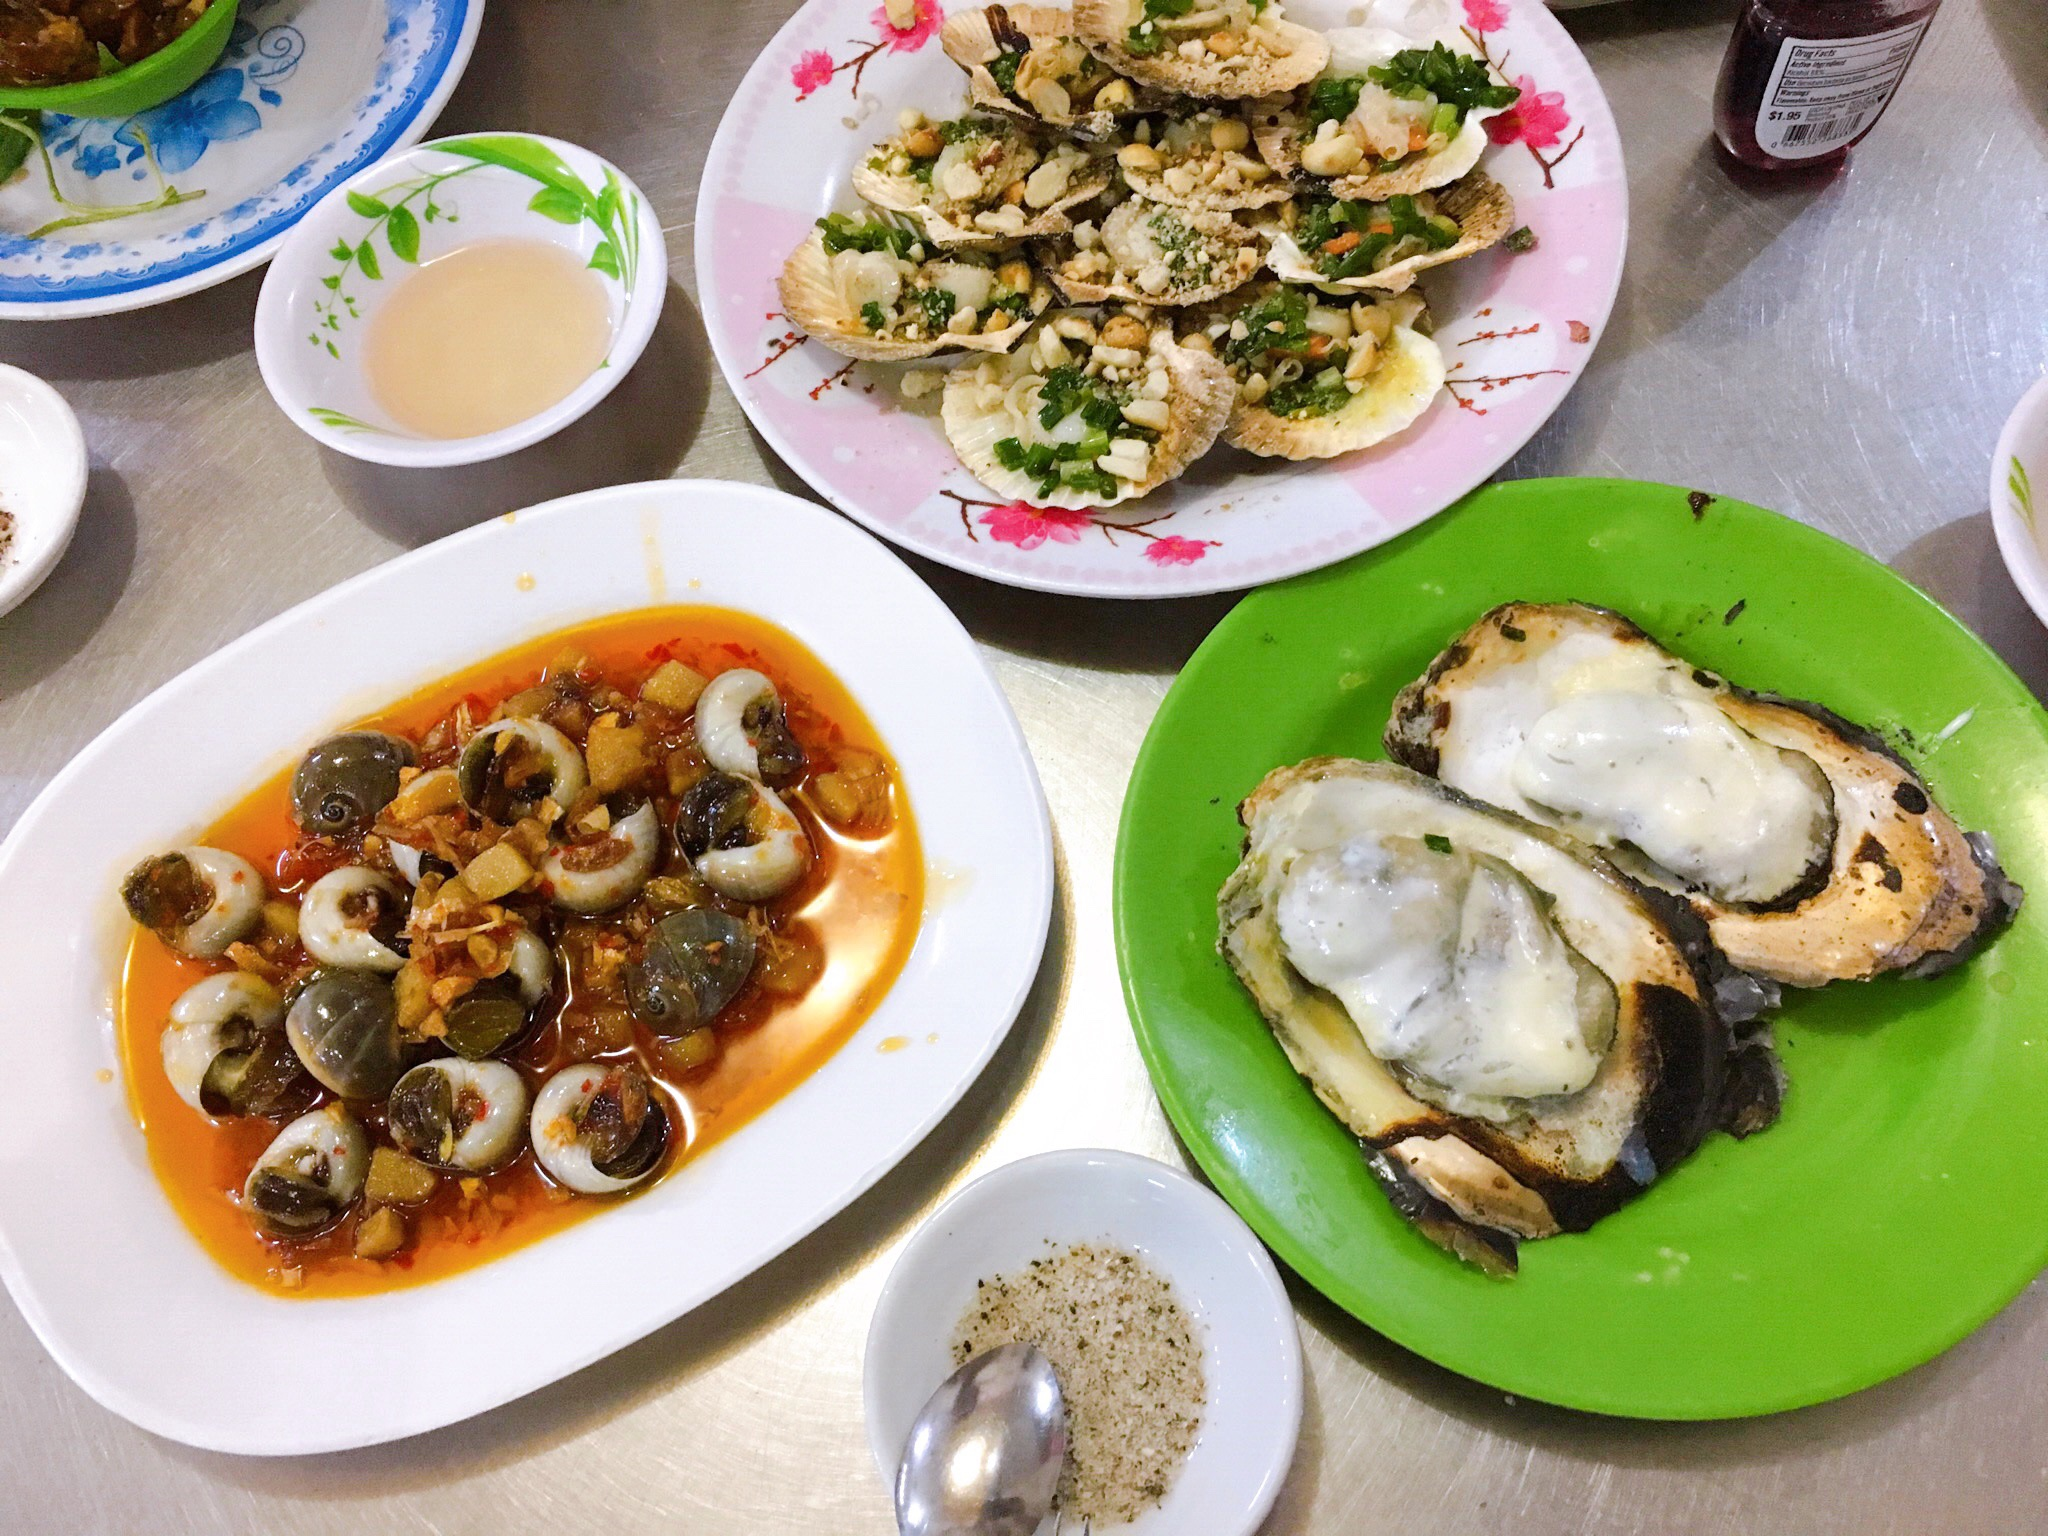 Food is what I miss most on streets of Ho Chi Minh City